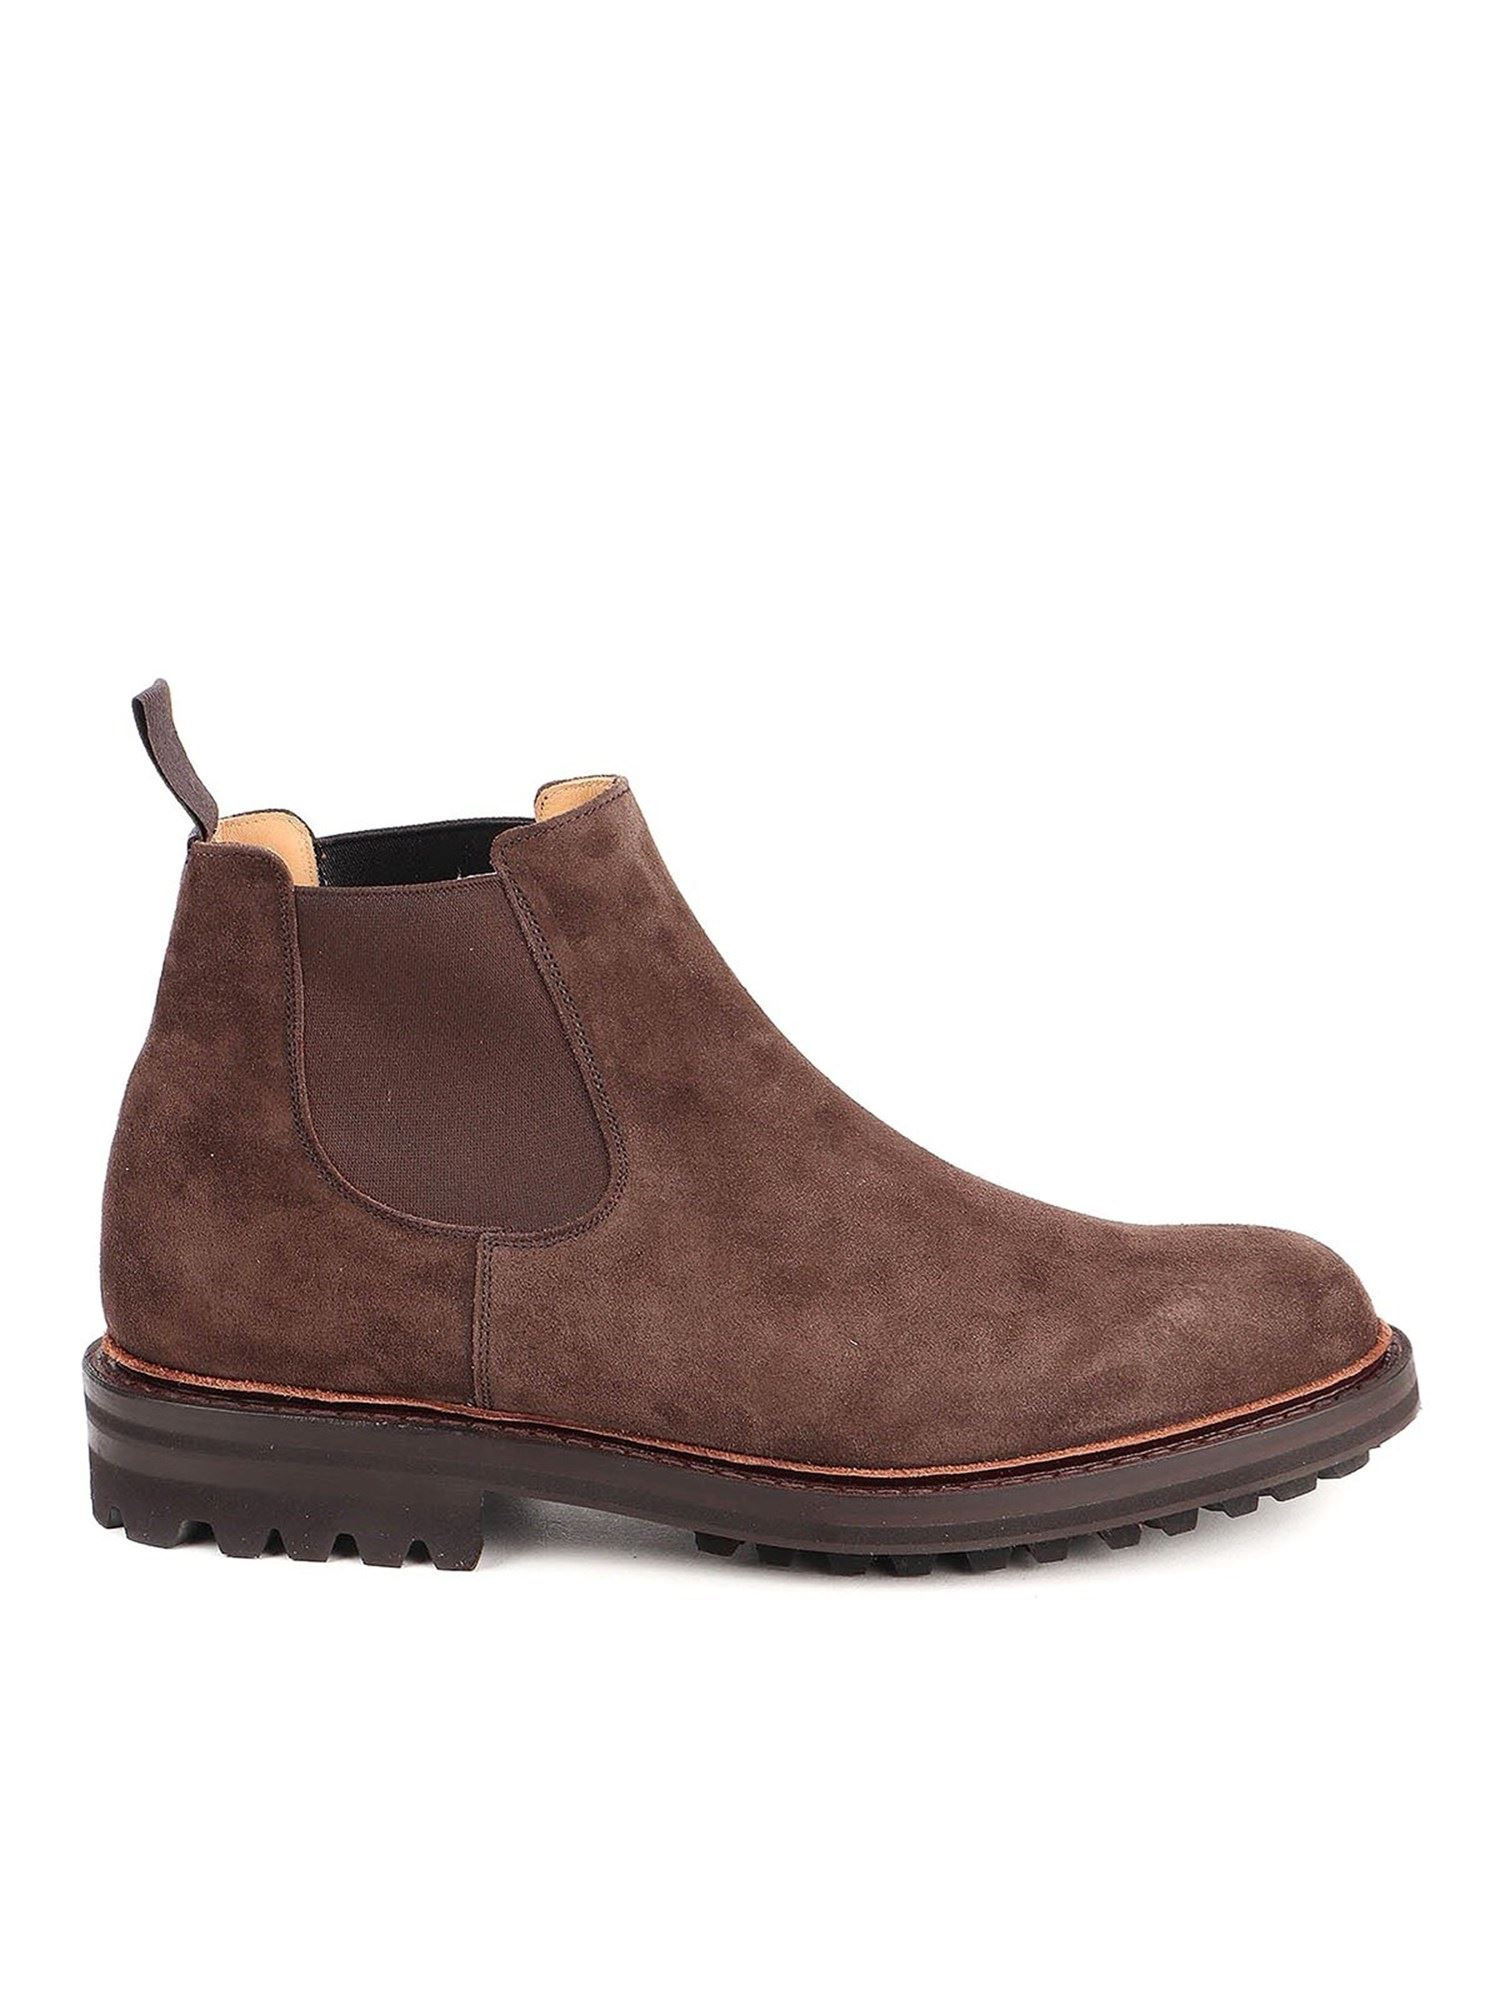 CHURCH'S MCCARTHY BEATLE BOOTS IN BROWN